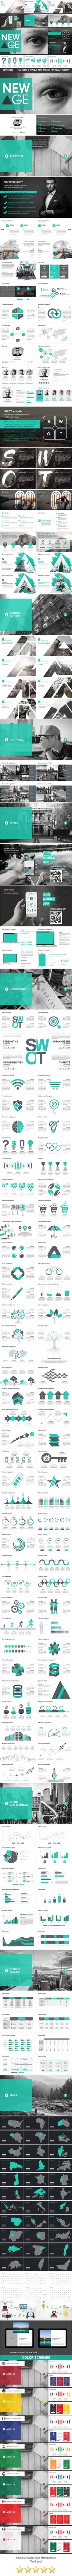 New Age Creative Powerpoint Template. Download here: https://graphicriver.net/item/new-age-creative-powerpoint-template/17659484?ref=ksioks